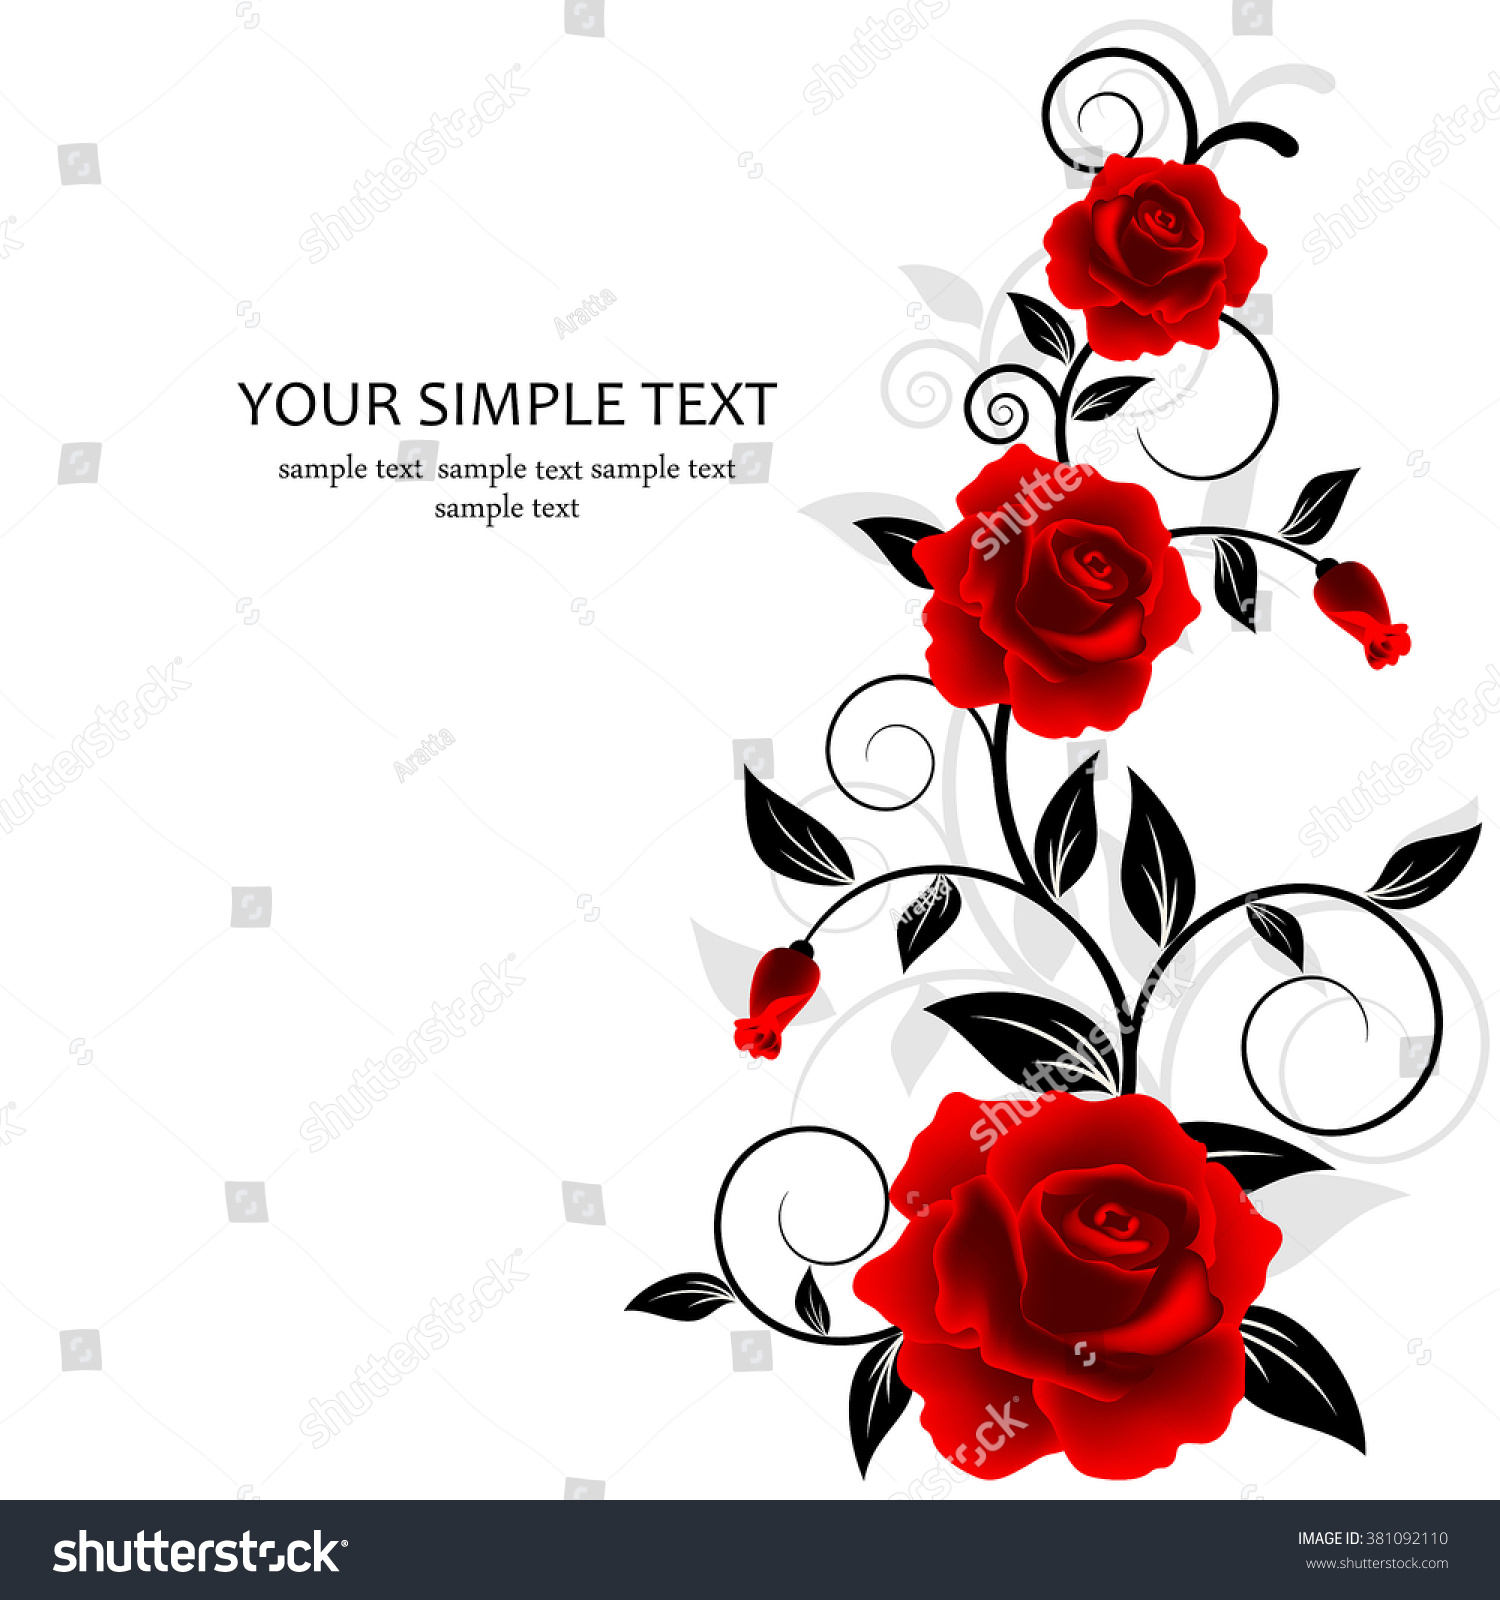 Wedding Card Invitation Abstract Floral Background Stock Image